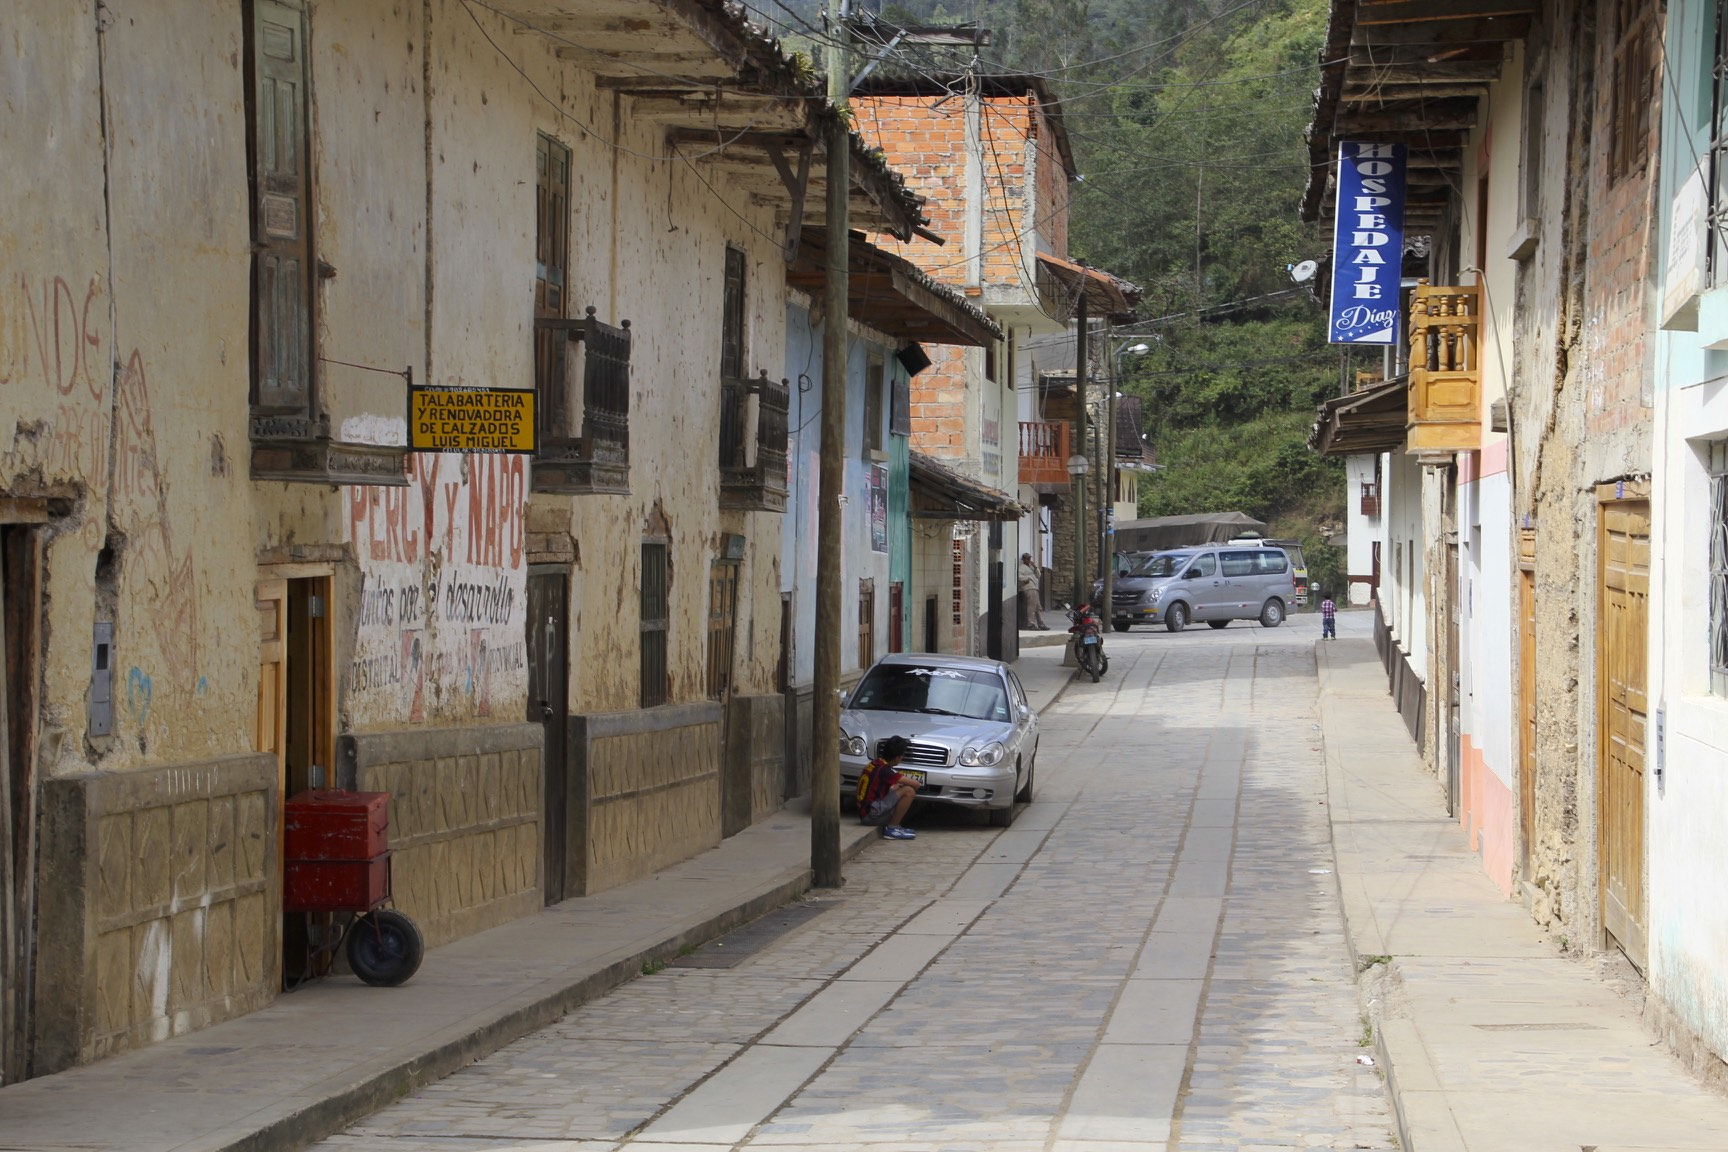 The town of Leymebamba where the magnificent Museo de Leymebamba is located.